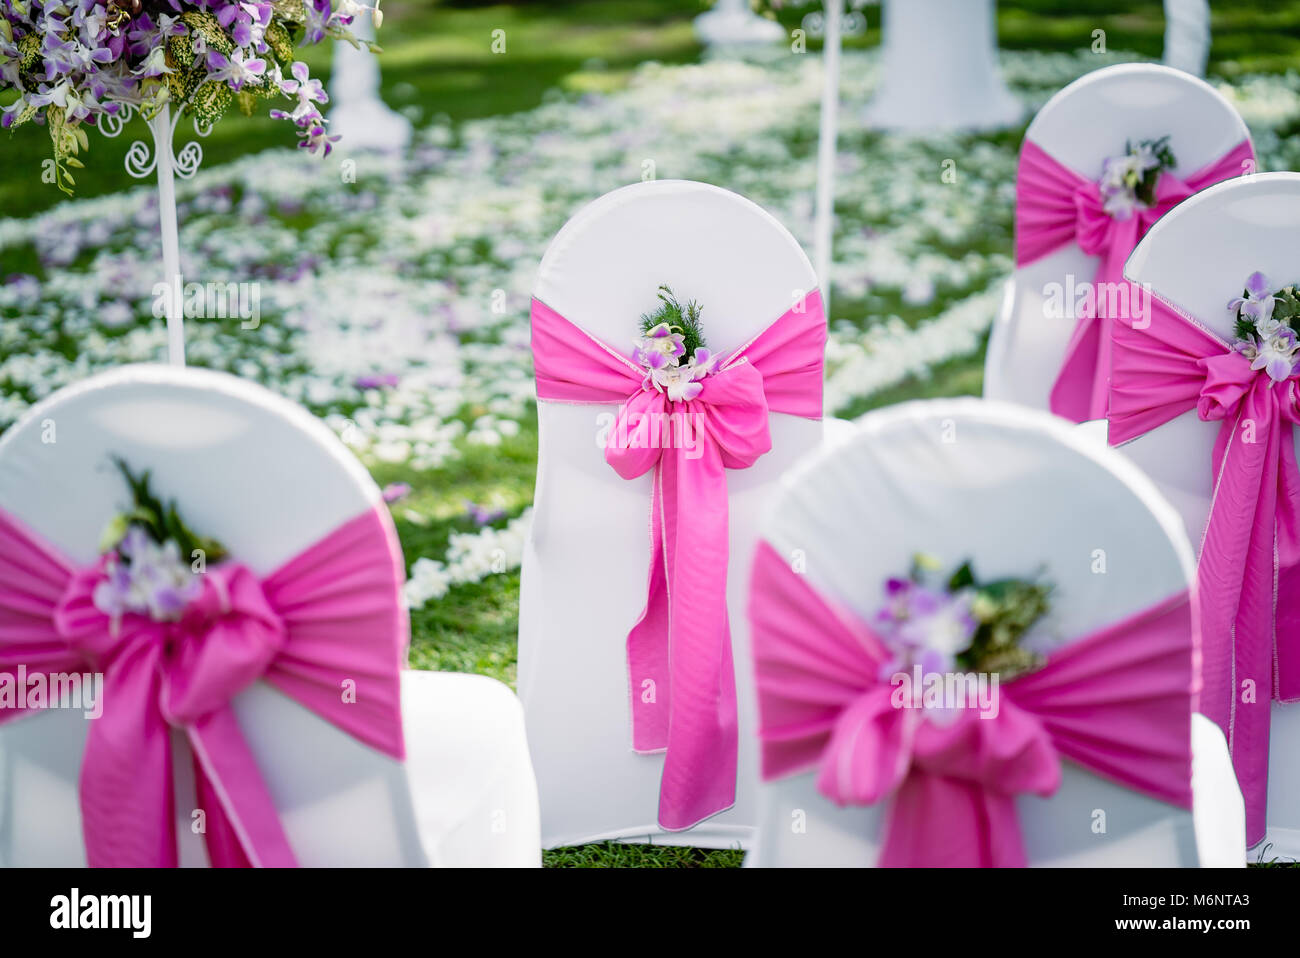 The wedding venue, The chairs with white lawn cover decorated in ...